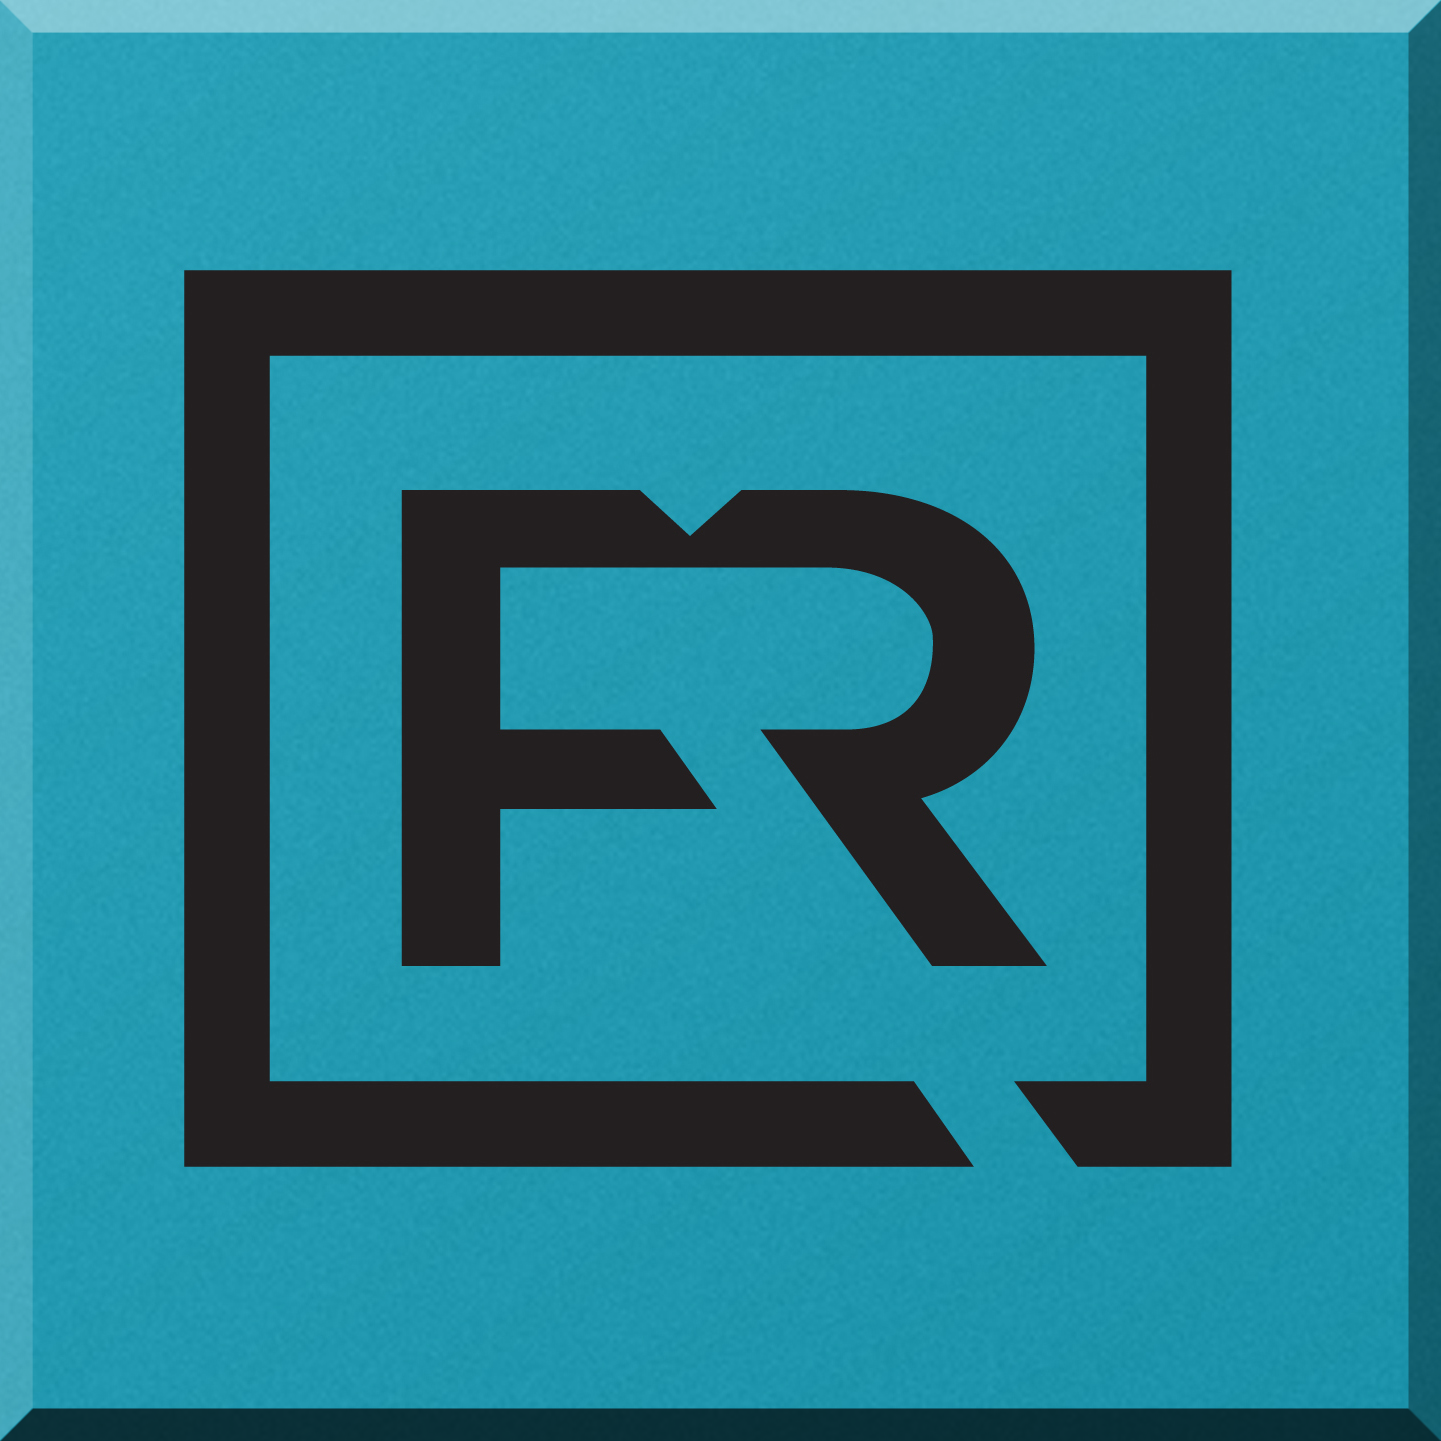 FR-Squarelogo_WithBevel.png